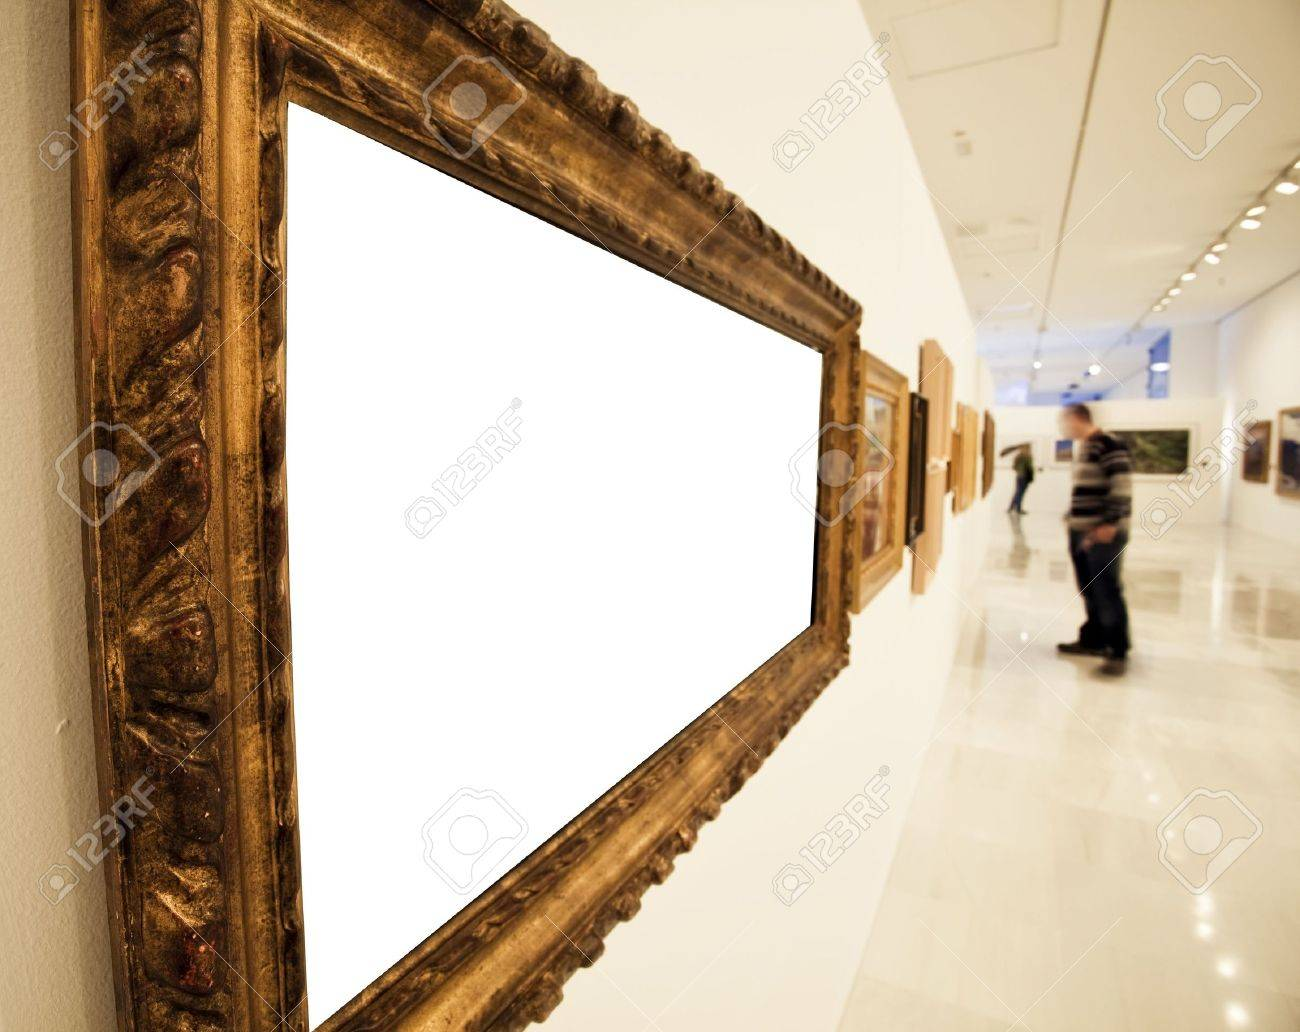 museum corridor with a blank big frame stock photo 5899869